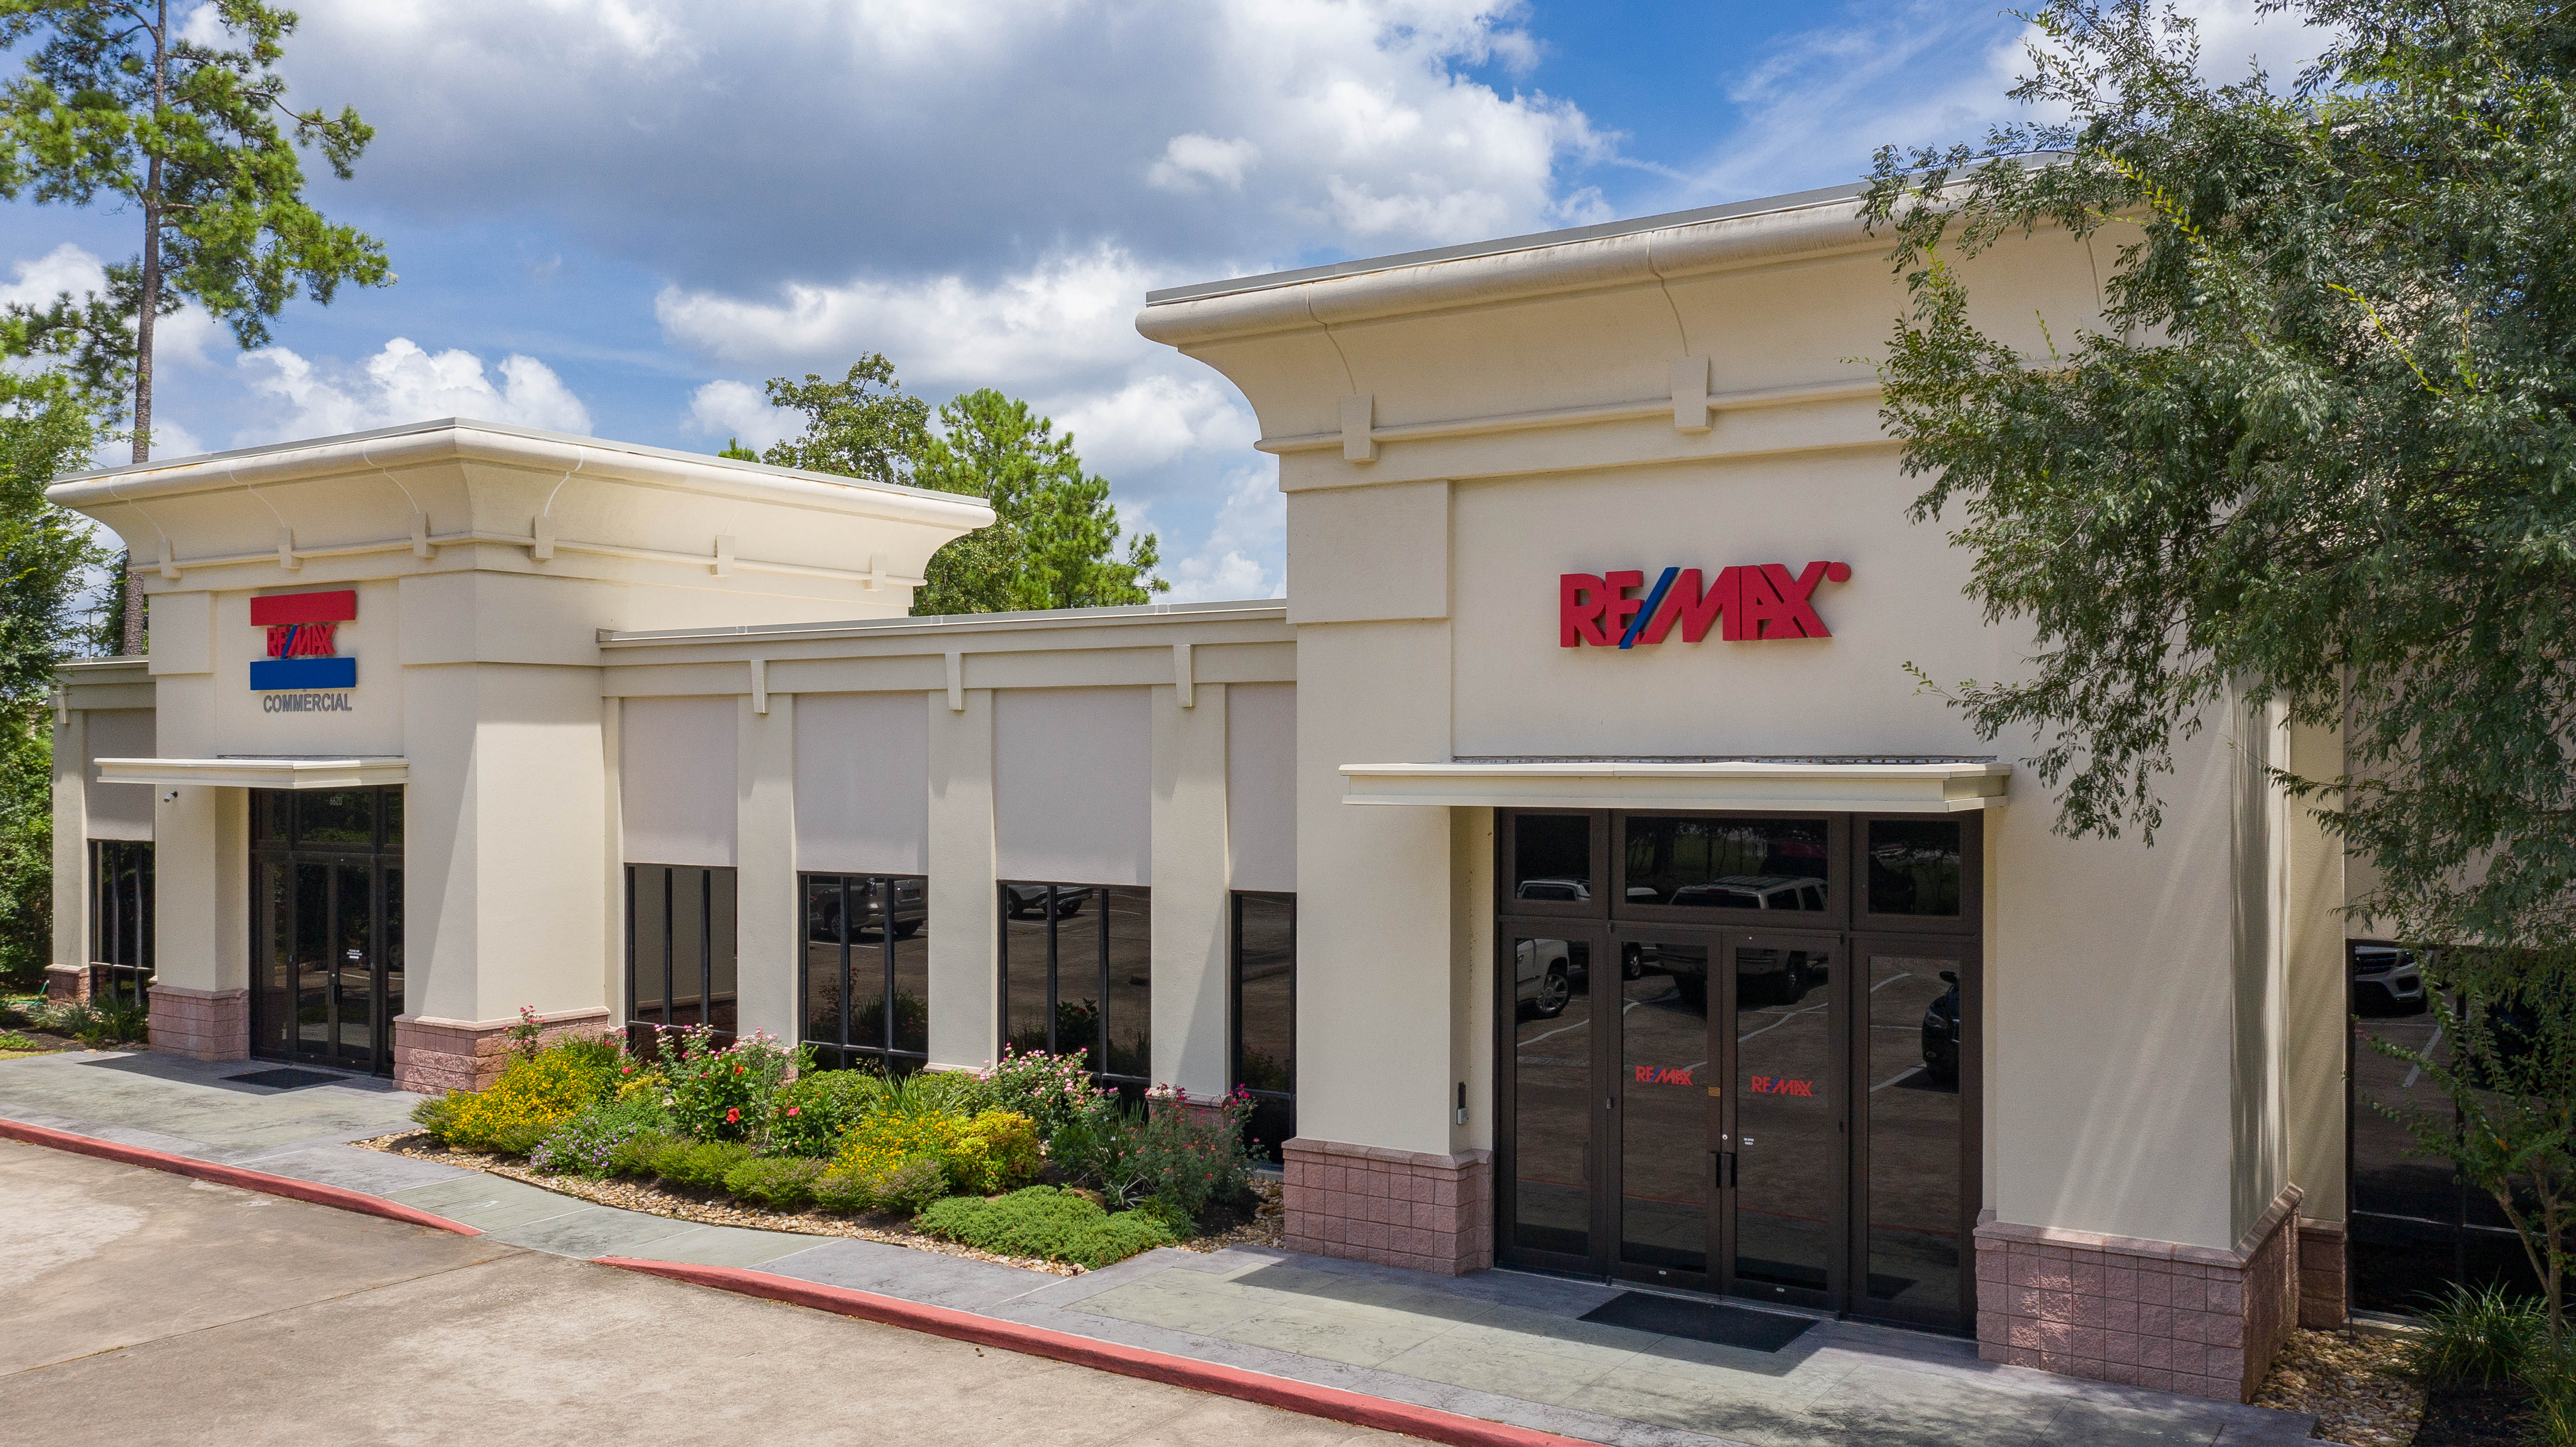 RE/MAX The Woodlands & Spring